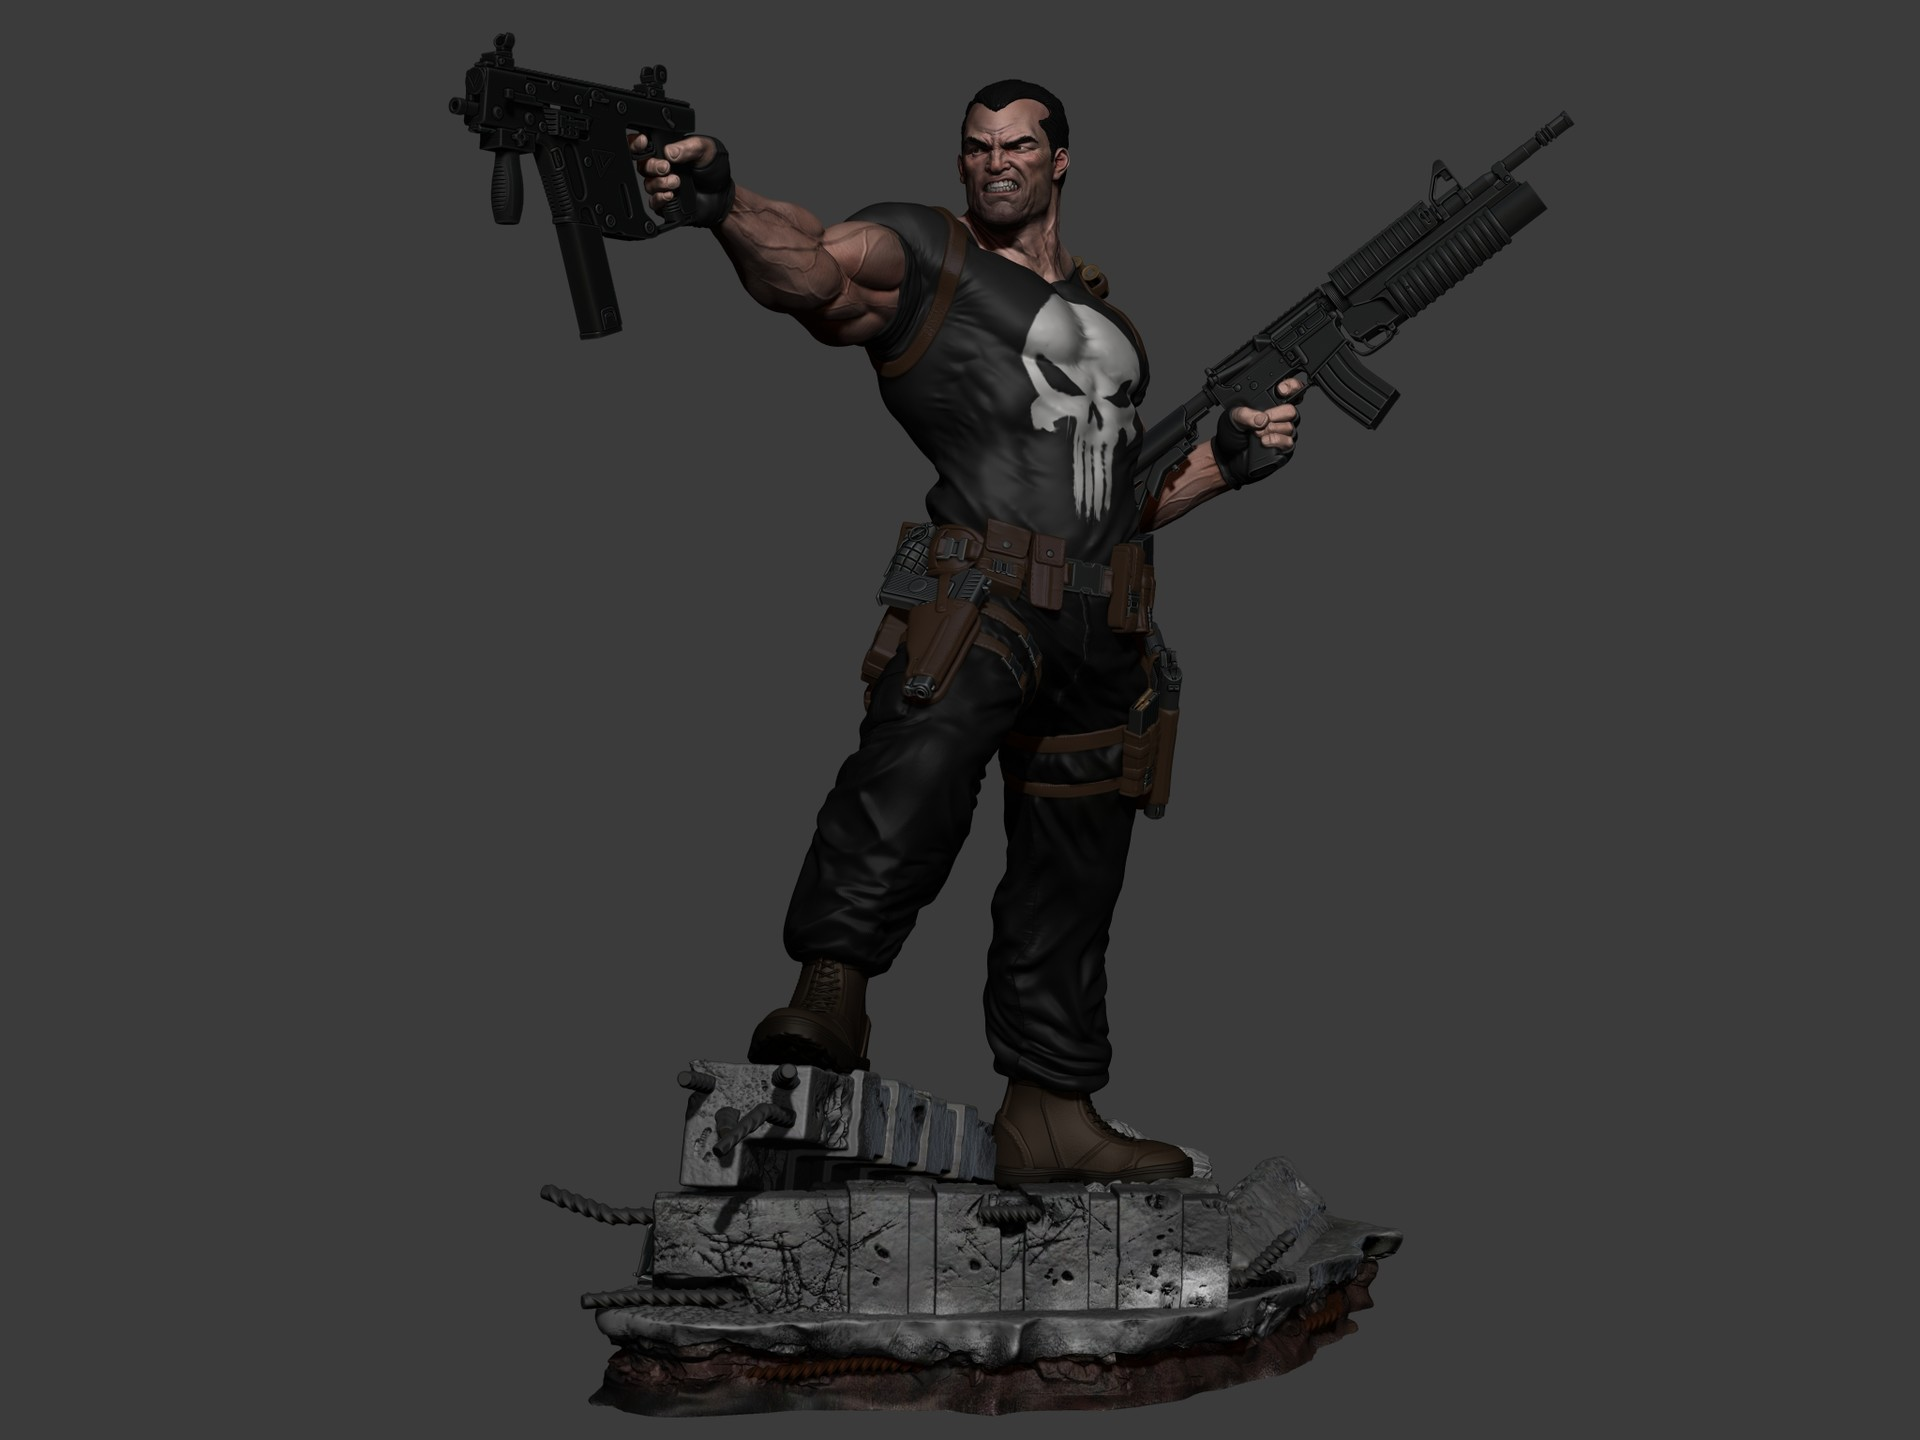 Franco carlesimo punisher prev 002